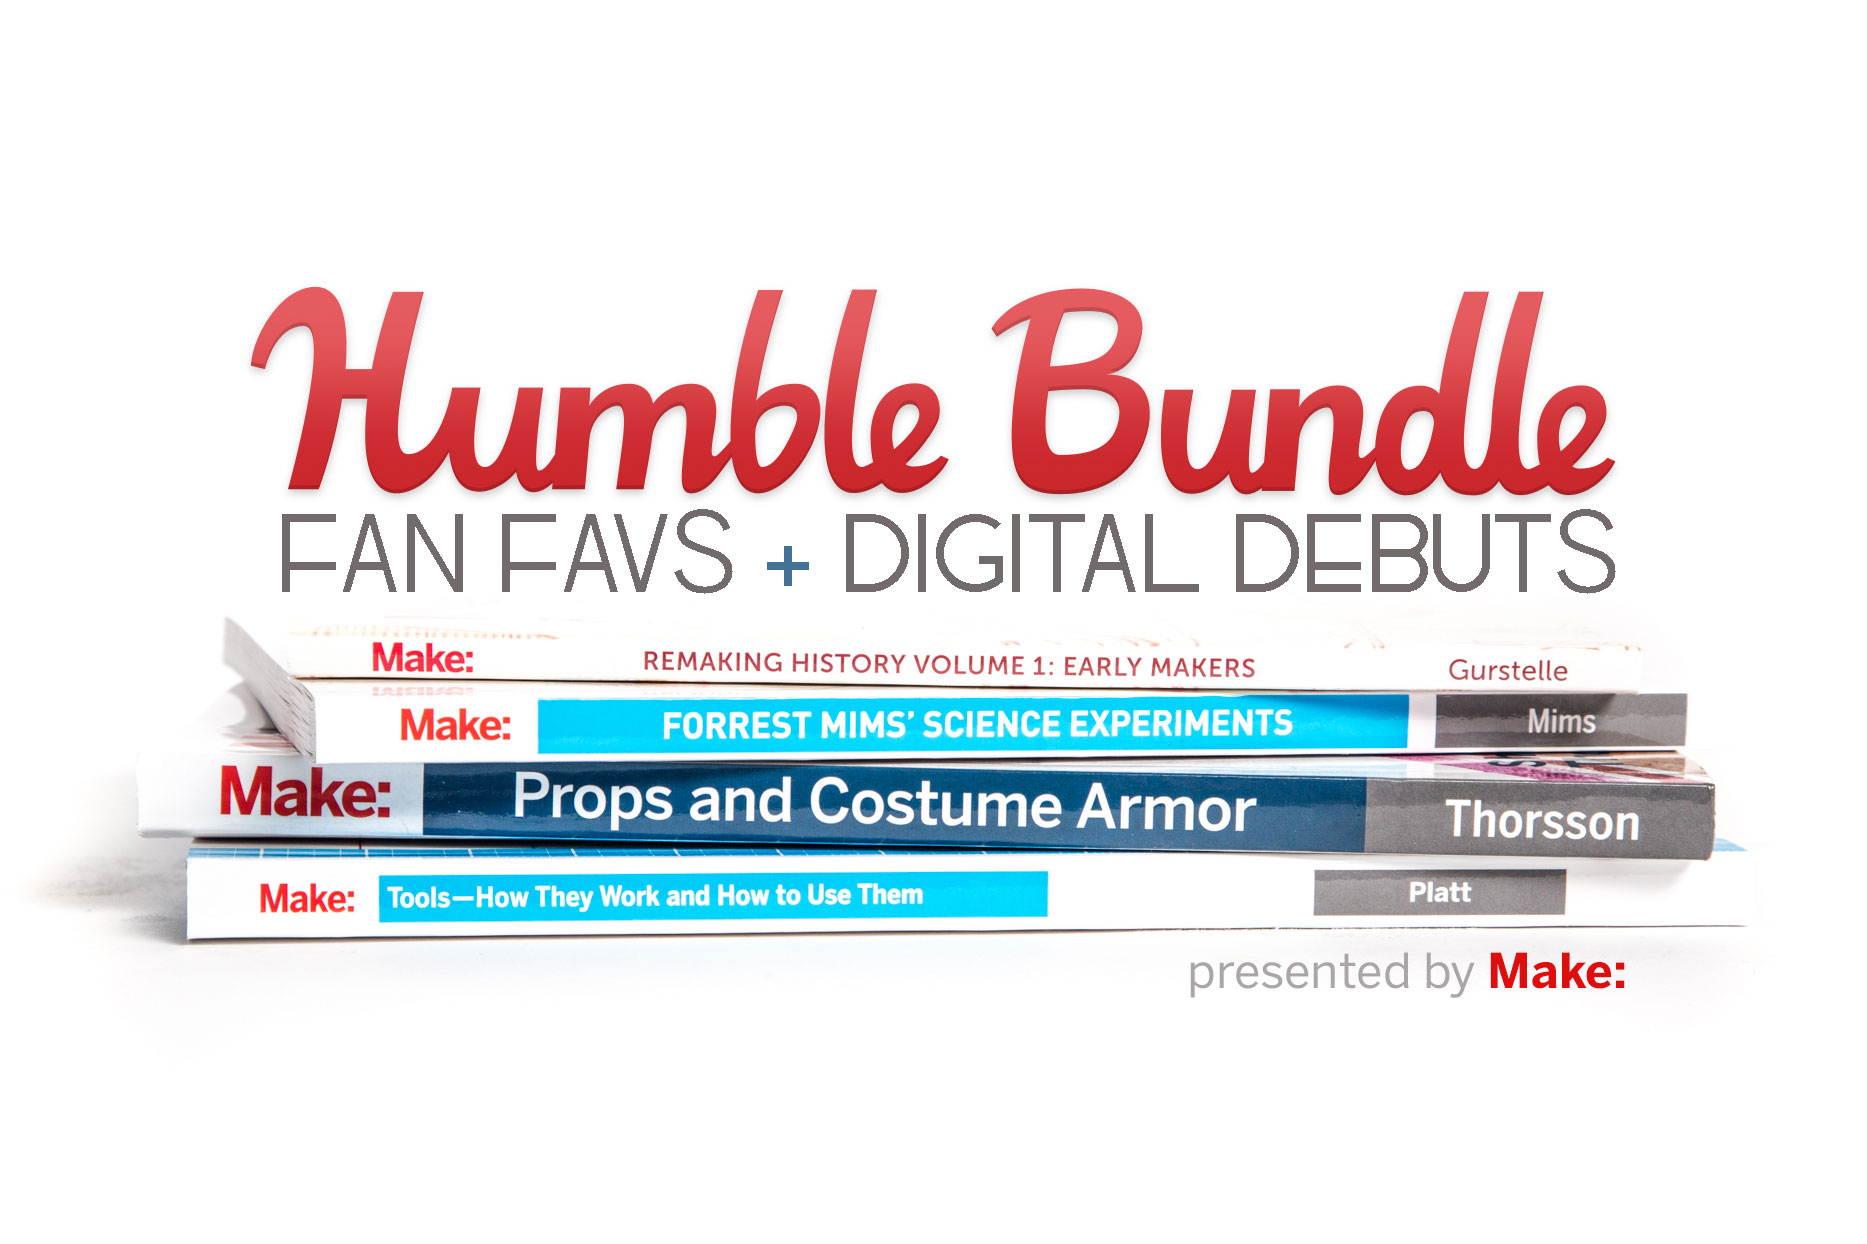 """Books piled up with """"Humble Bundle Fan Favs + Digital Debuts"""" written above."""